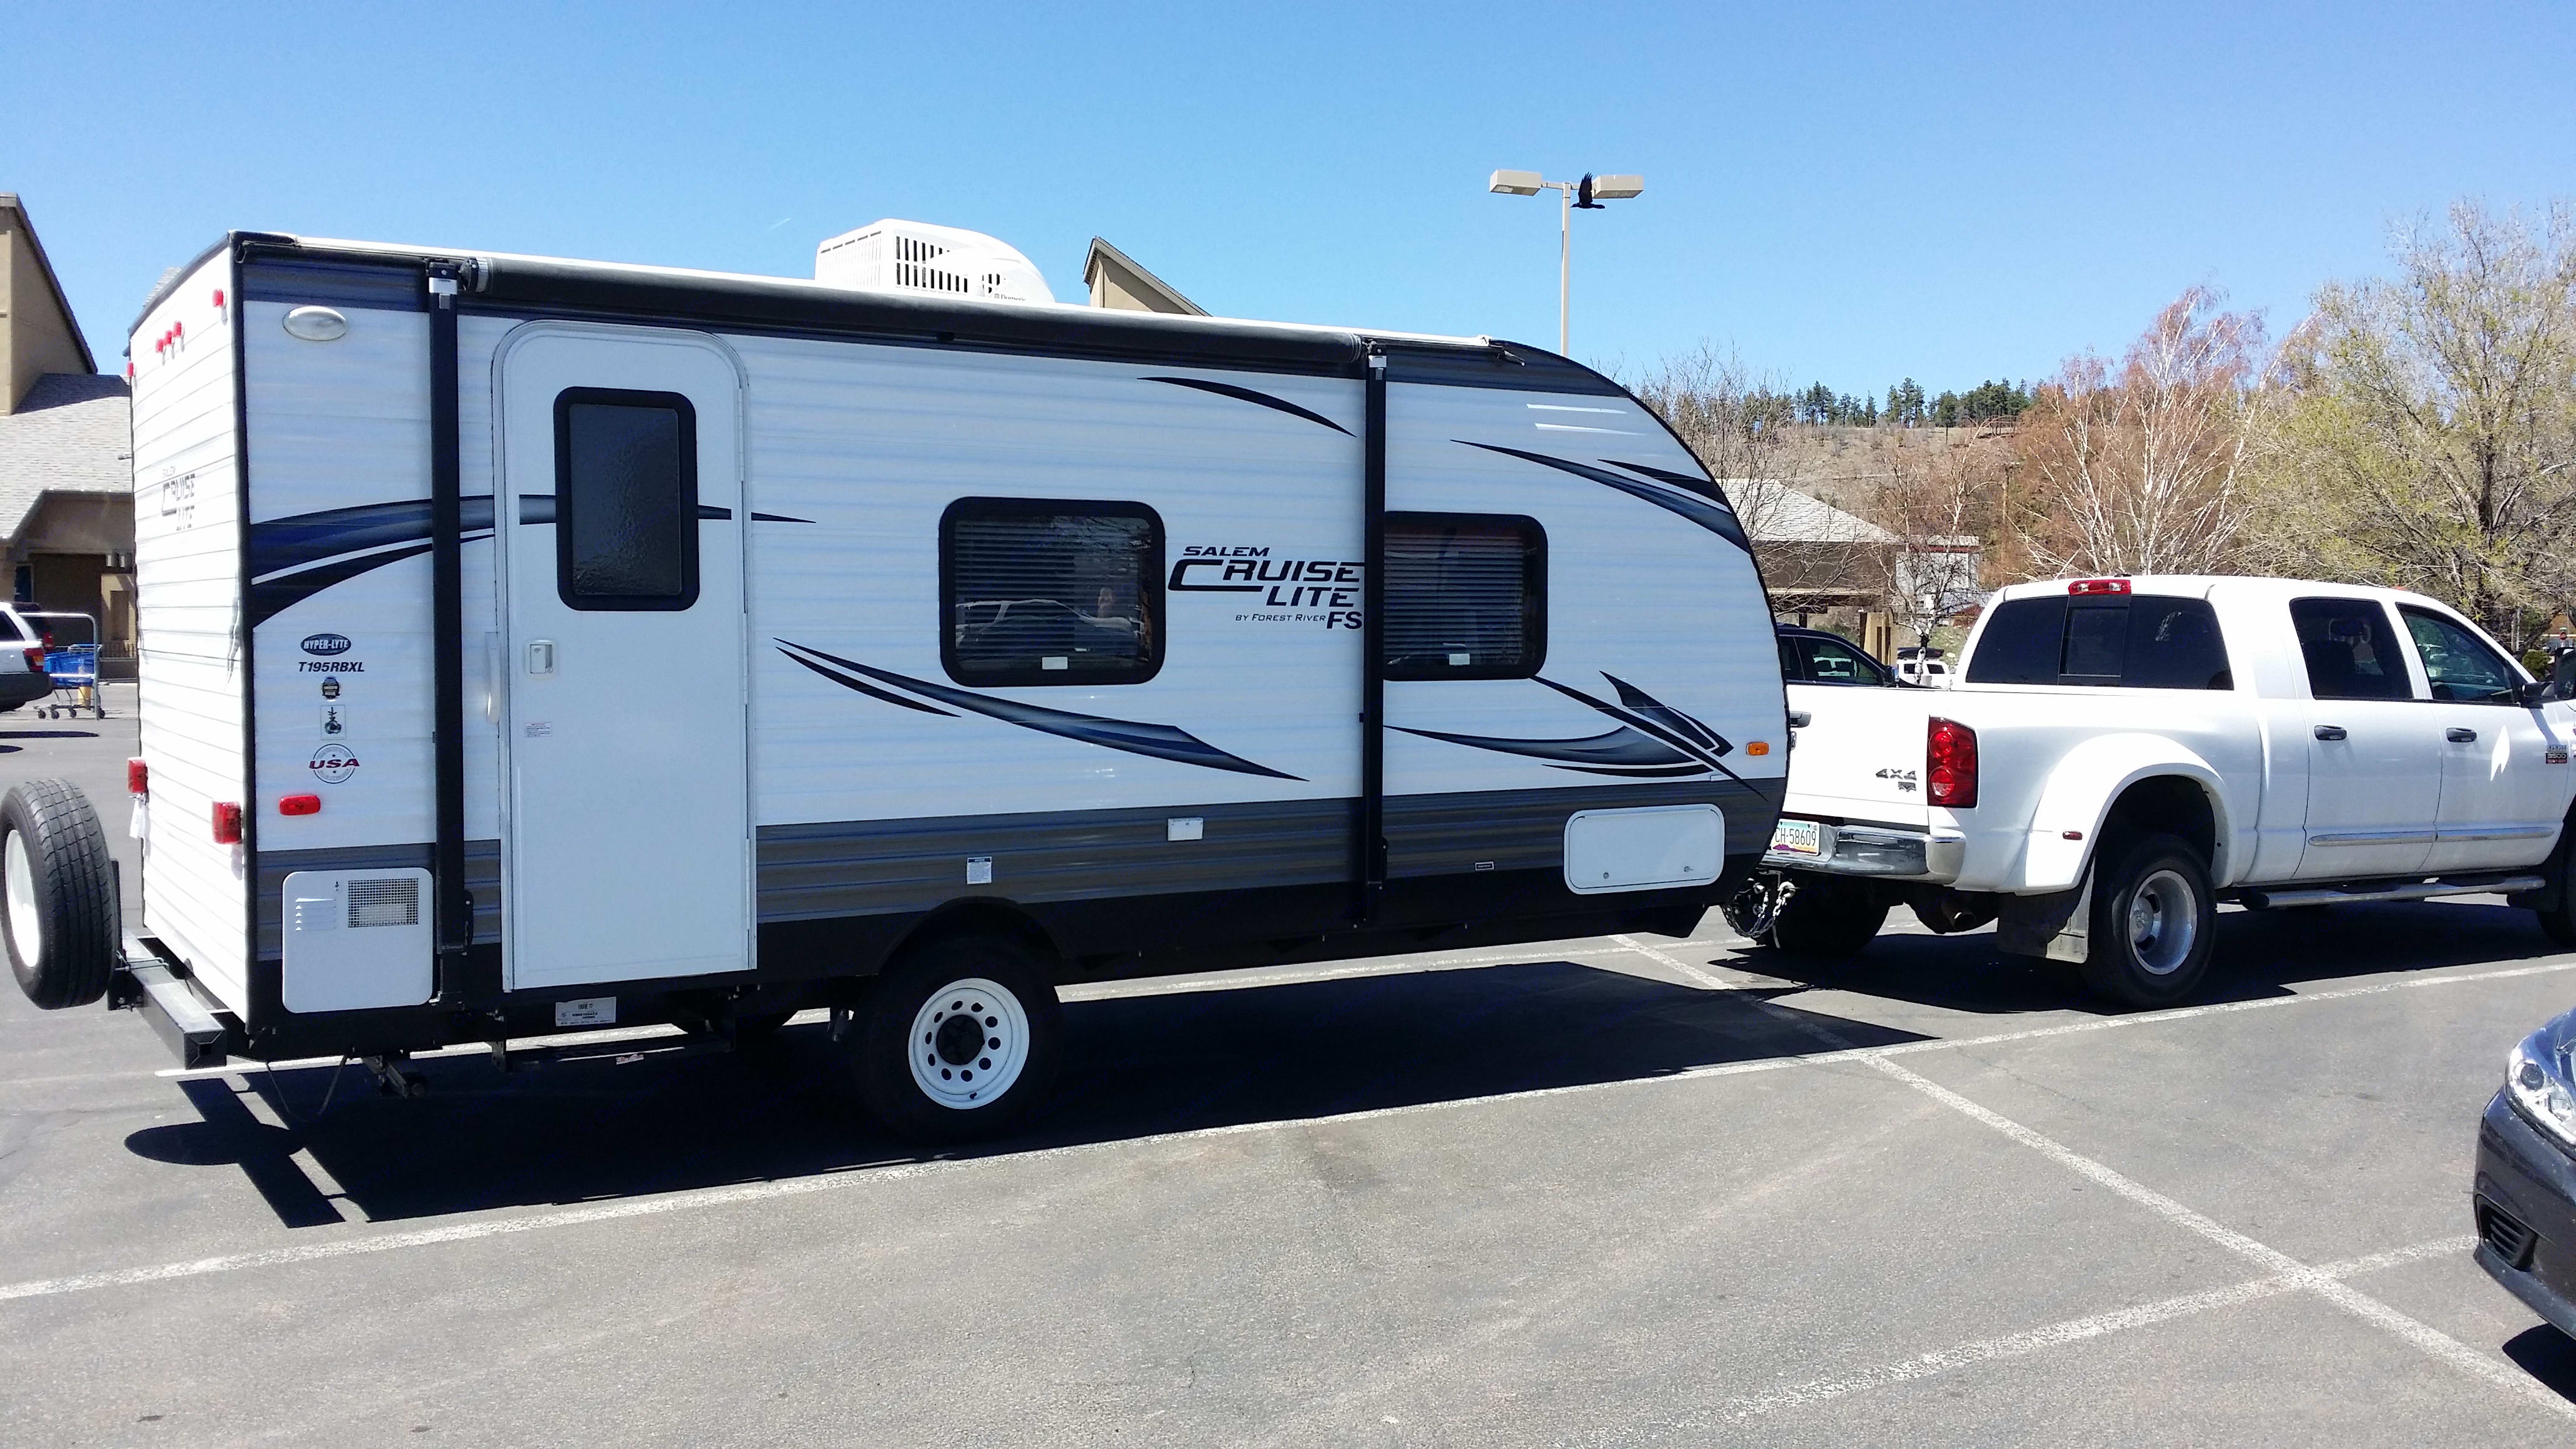 Easy to tow. Salem Cruise Lite 2017